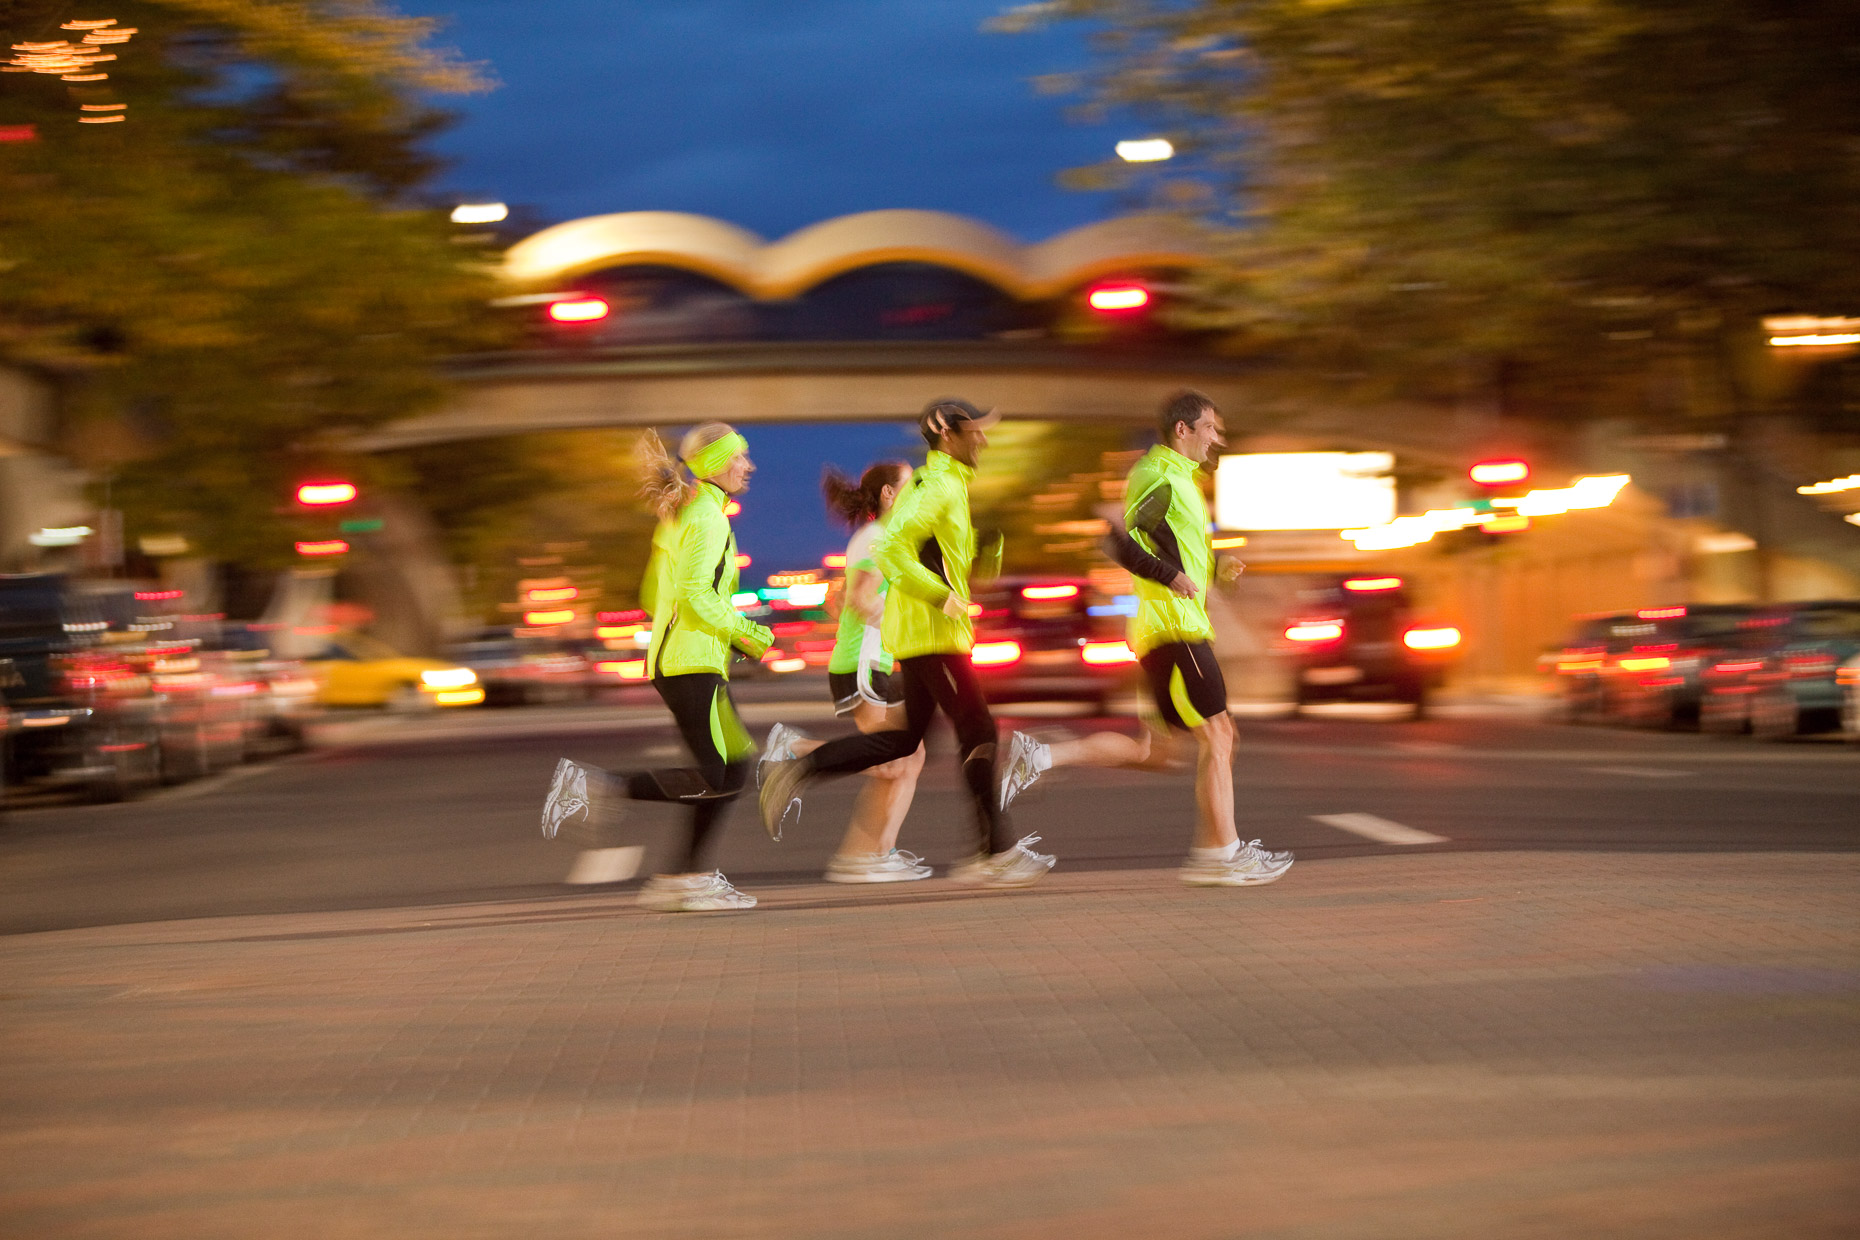 Group of runners with reflective clothing running at night on city street. Spokane, Washington. Fitness. David Zaitz Photography.